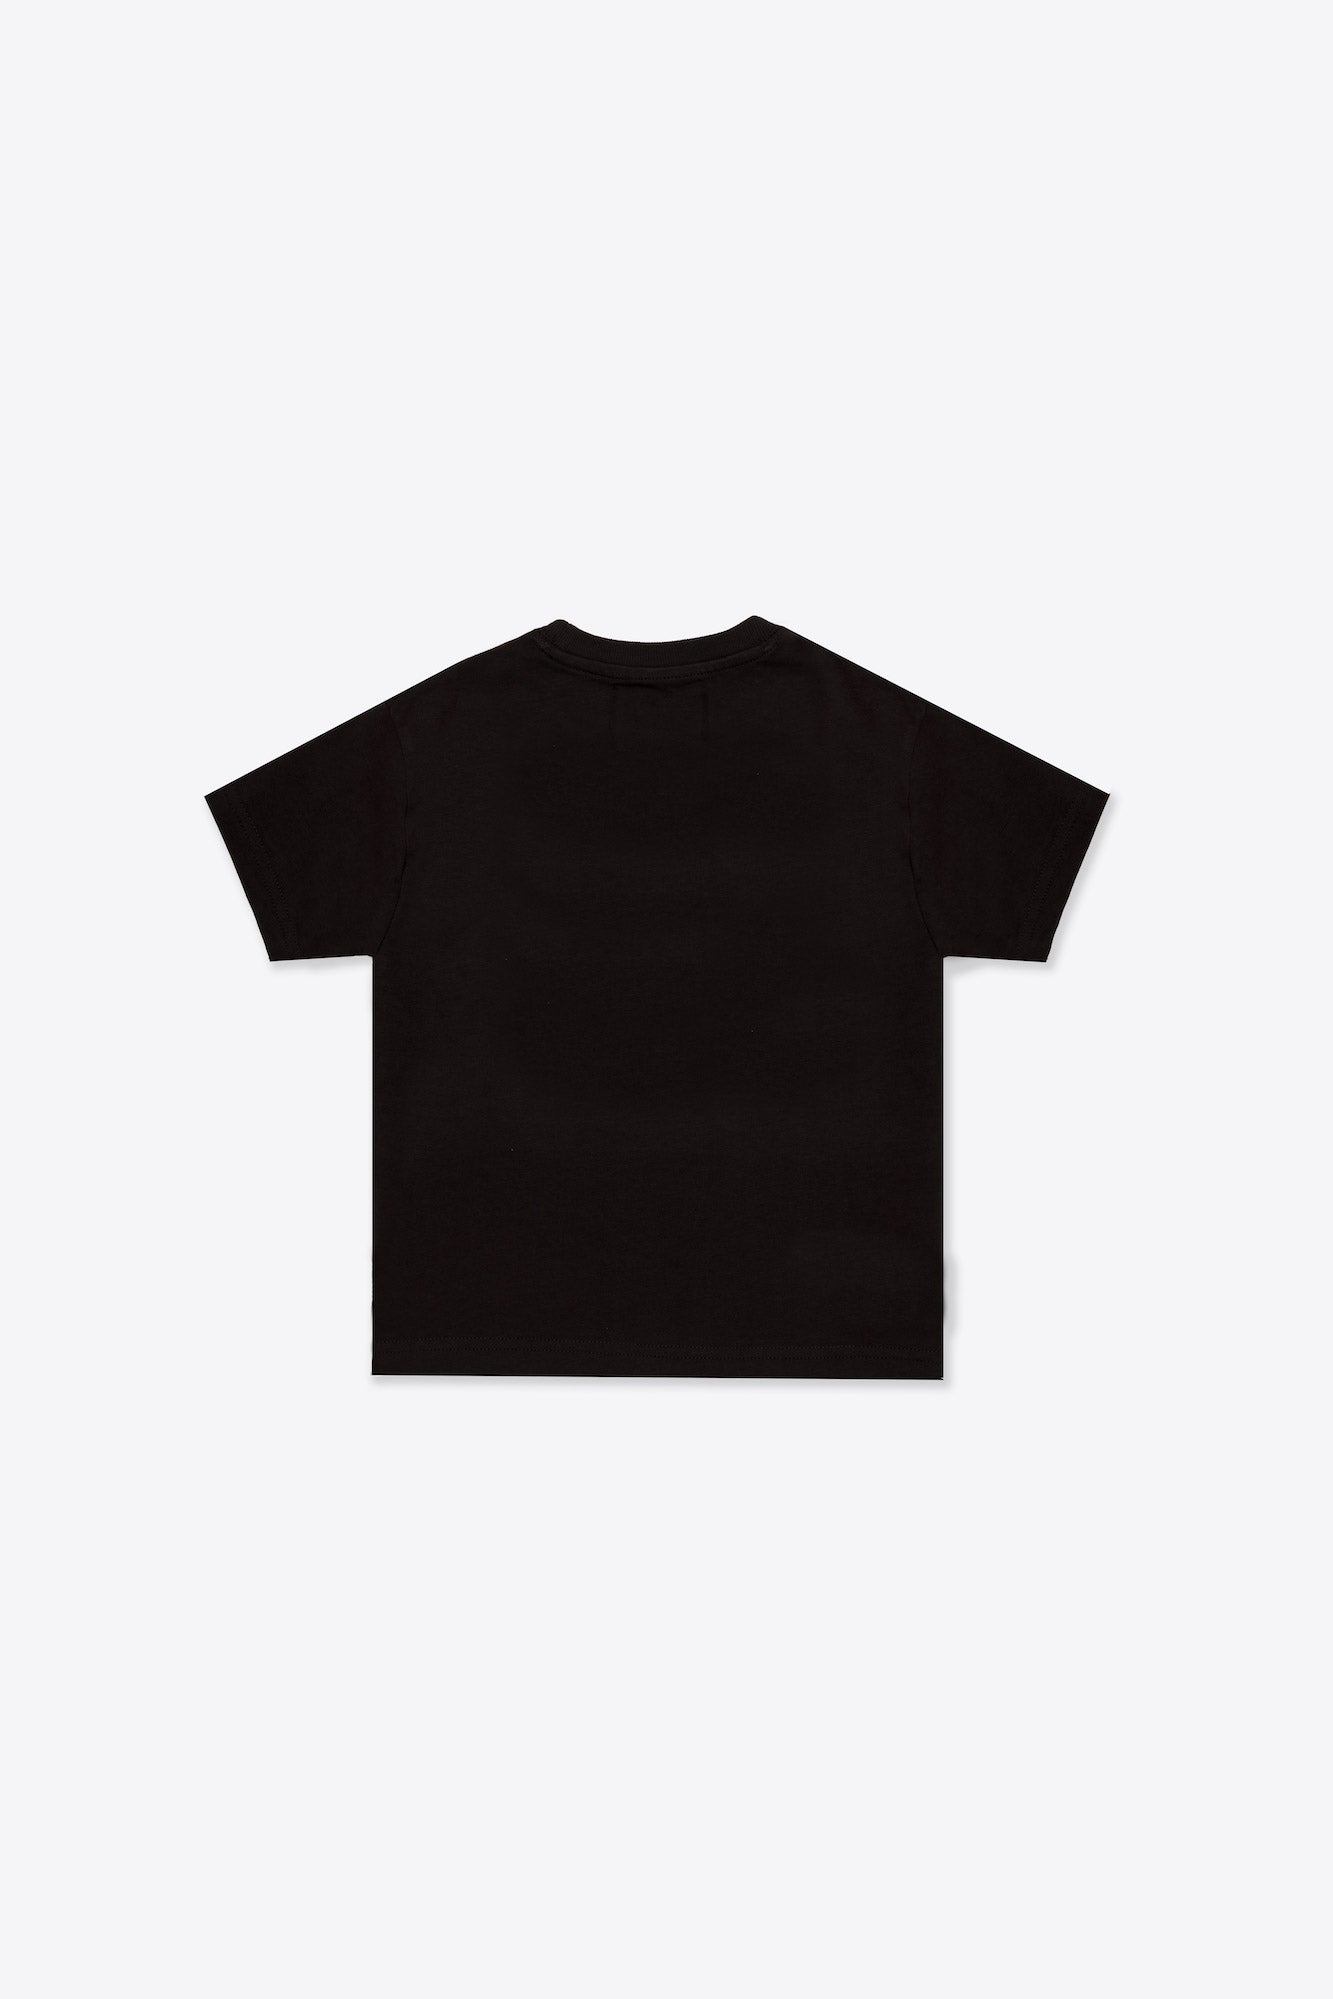 CHNGE Kids More Plants Tee